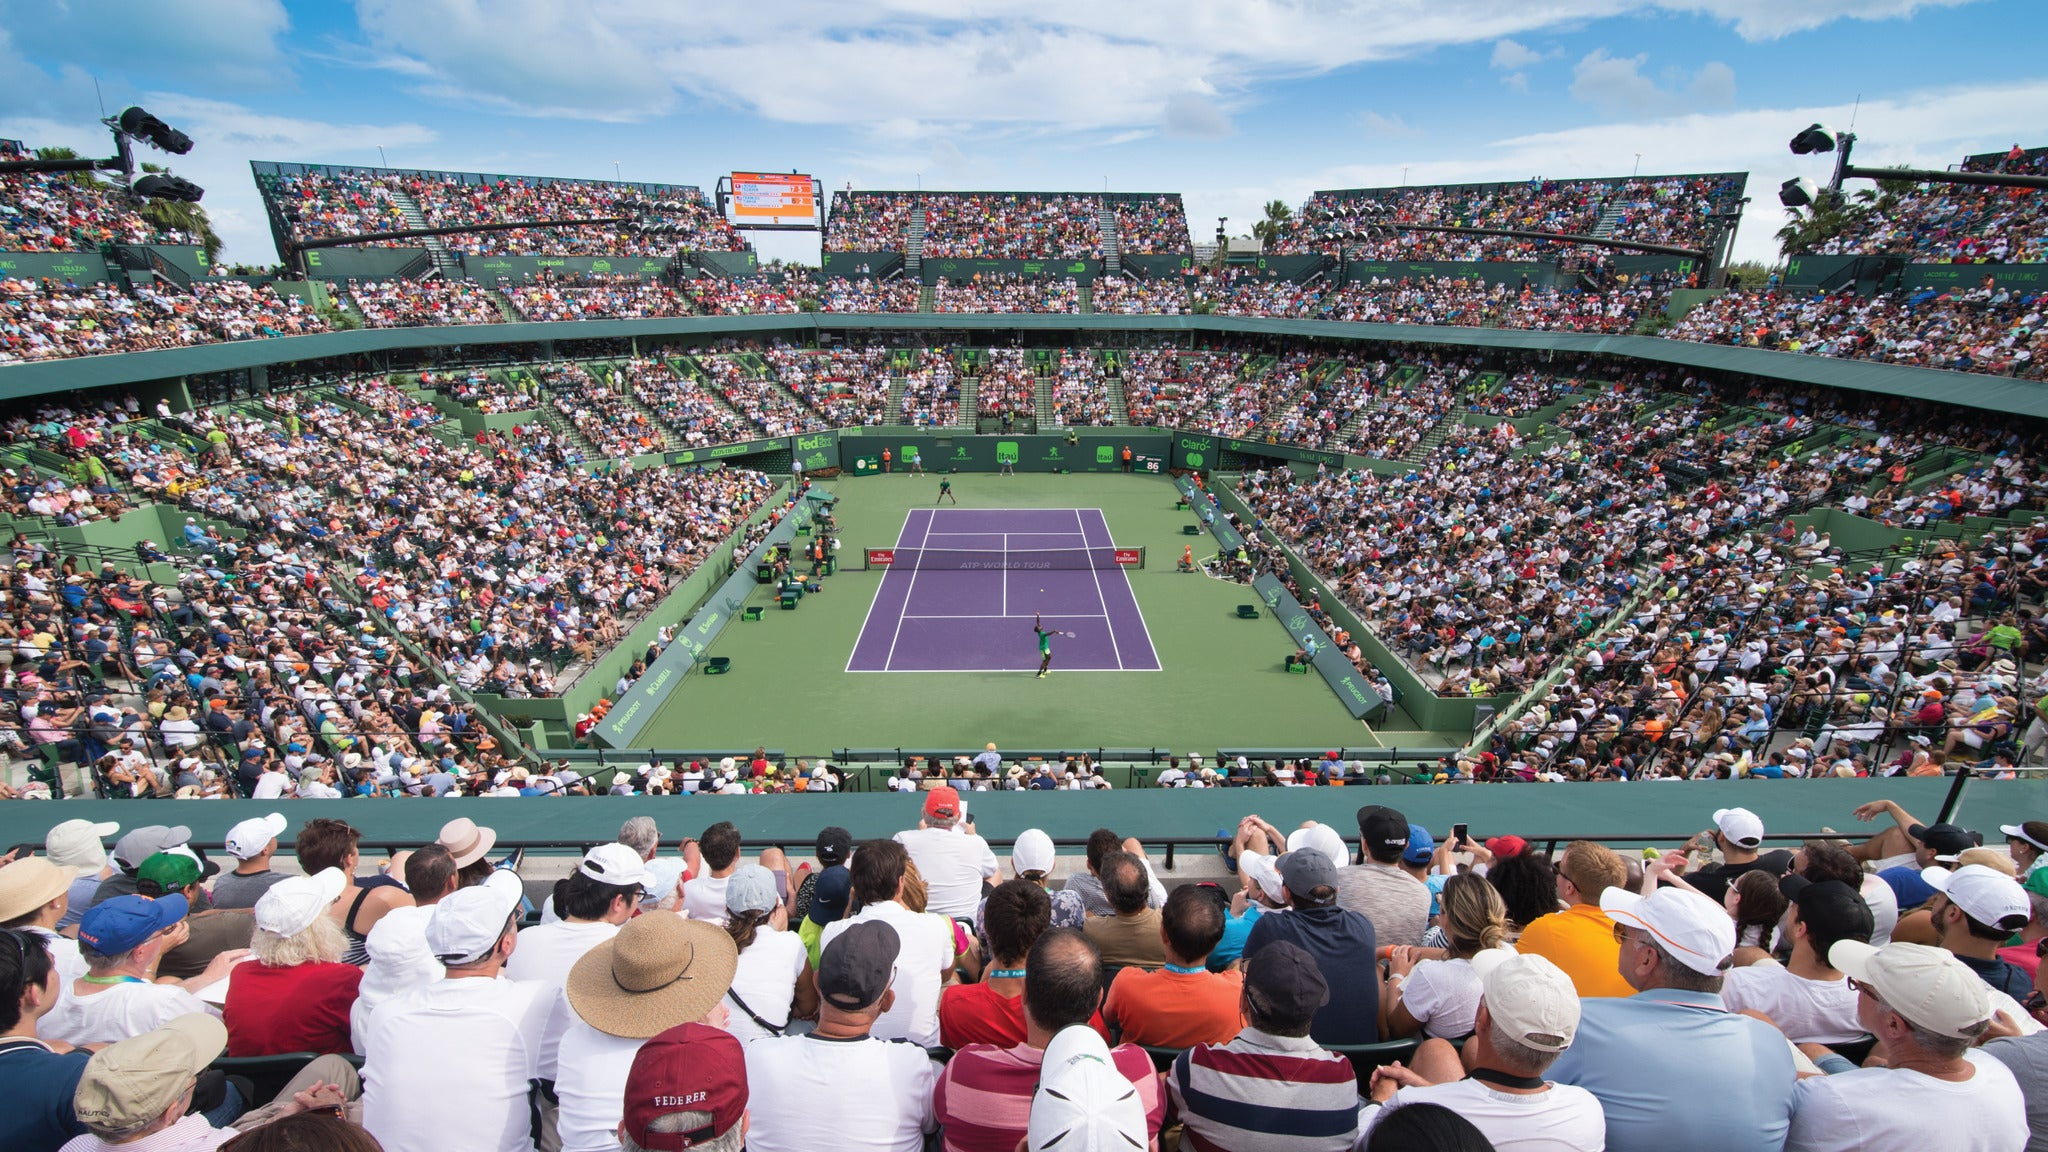 Miami Open Packages On Sale Now